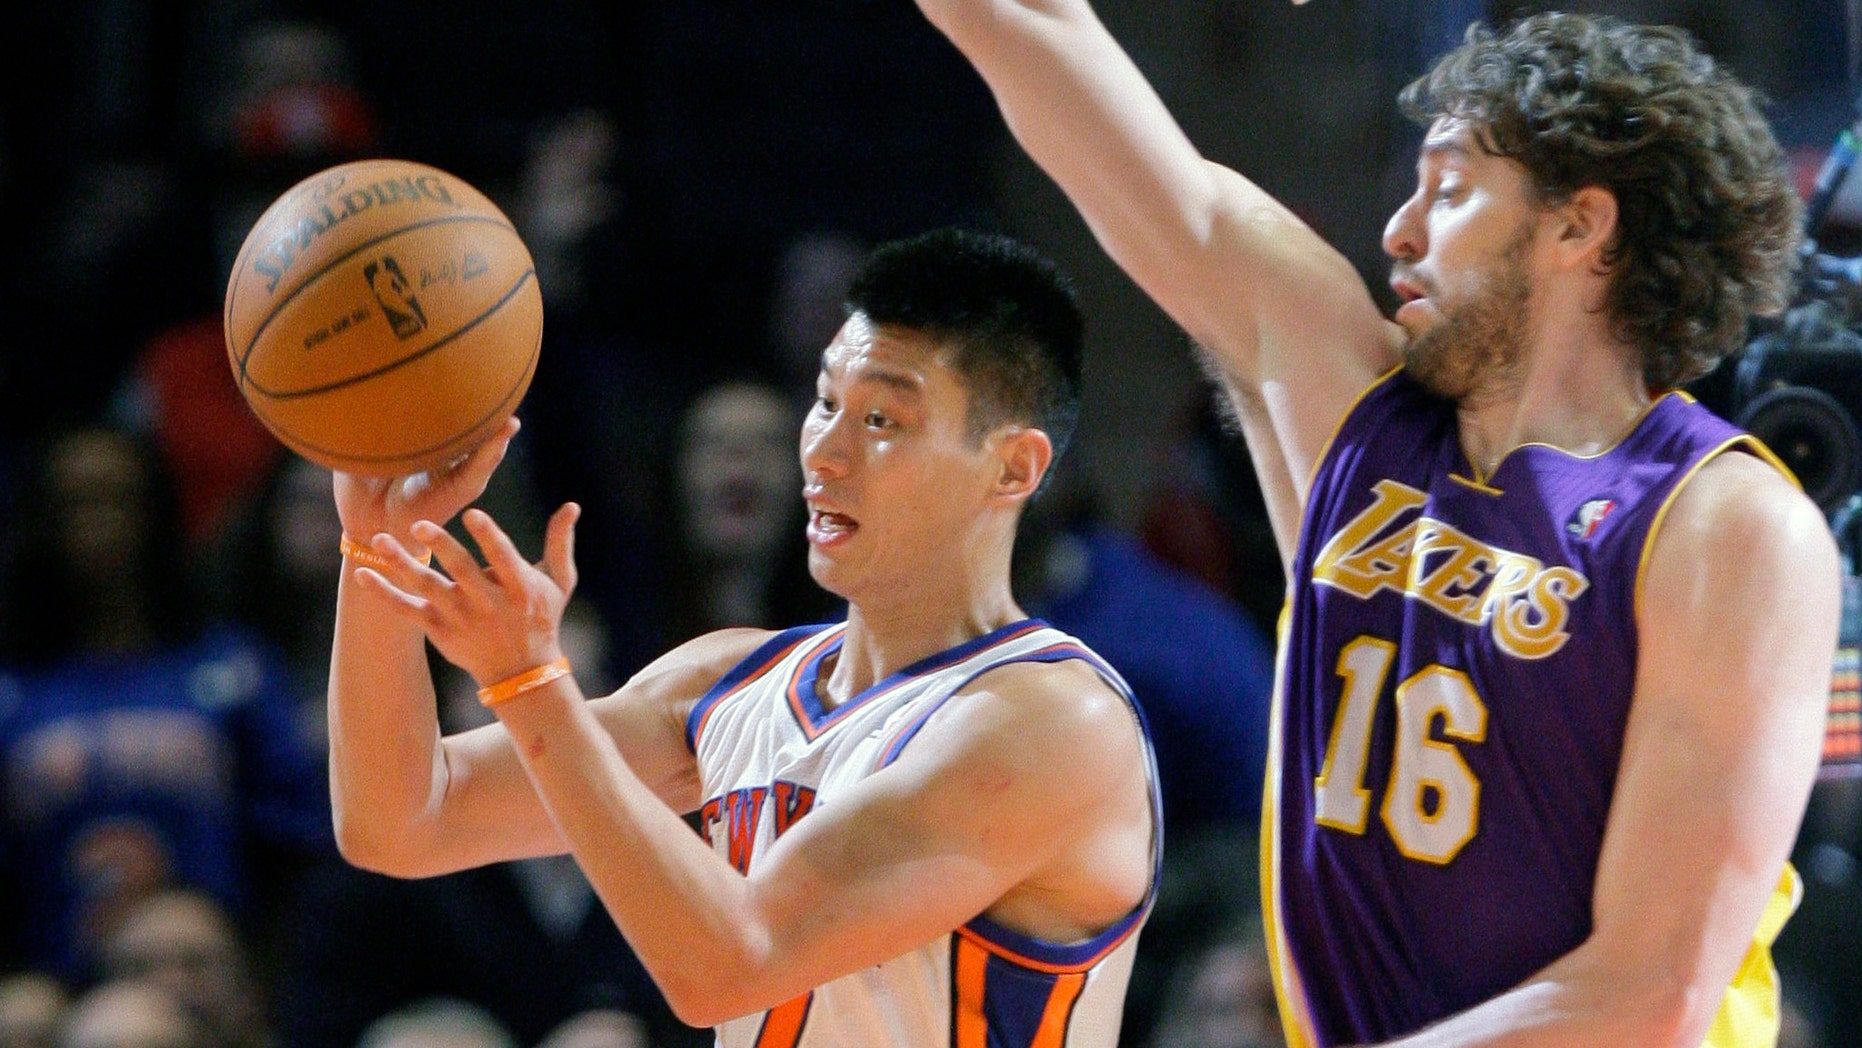 New York Knicks' Jeremy Lin (17) passes away from Los Angeles Lakers' Pau Gasol (16), of Spain, during the second half of an NBA basketball game Friday, Feb. 10, 2012, in New York. The Knicks won the game 92-85. (AP Photo/Frank Franklin II)